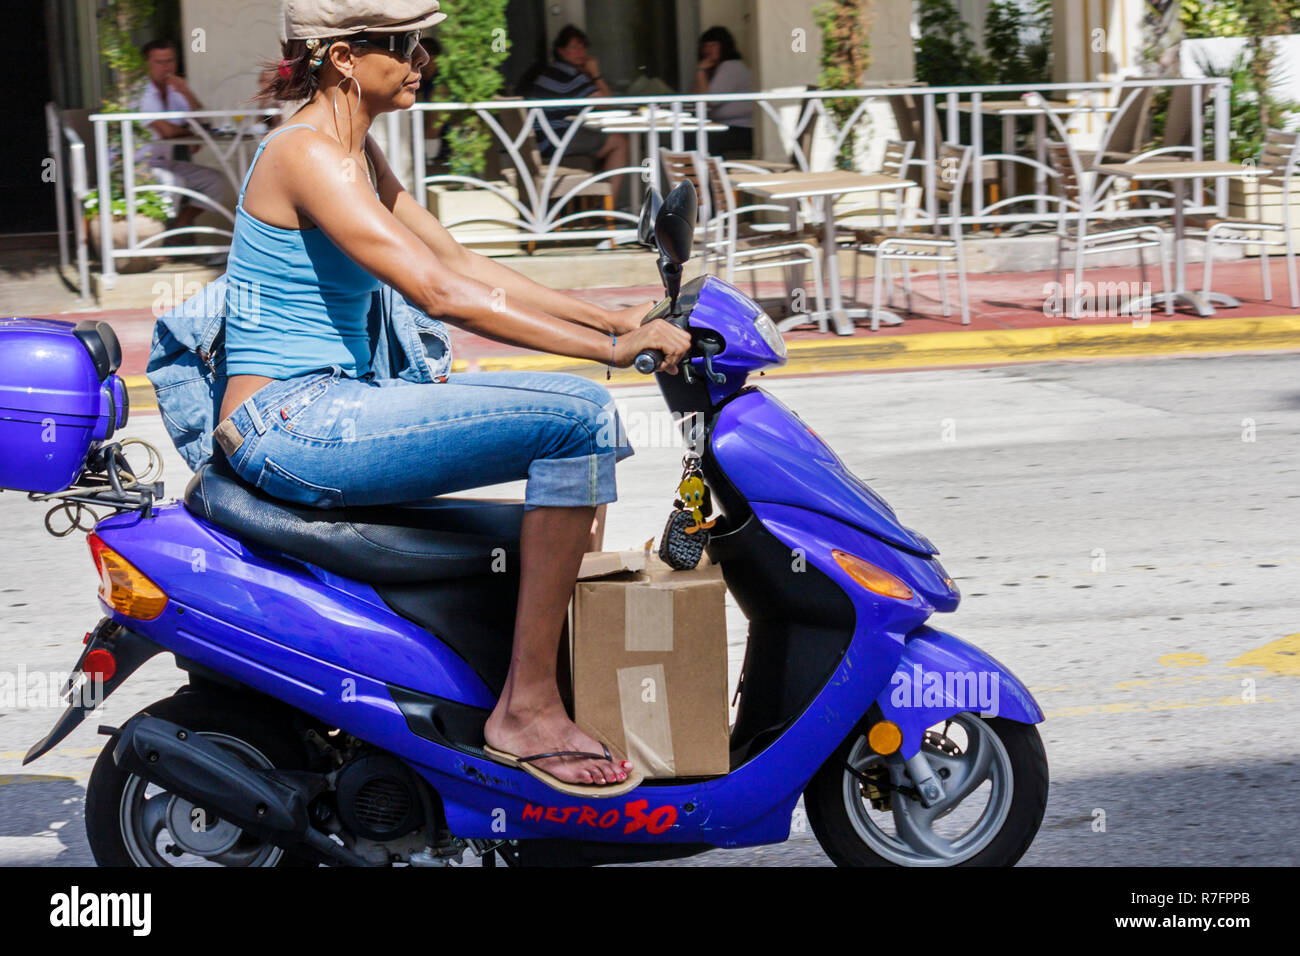 Miami Beach Florida Ocean Drive scooter motorcycle two-wheeled motor vehicle personal transportation low cost urban Black wom - Stock Image